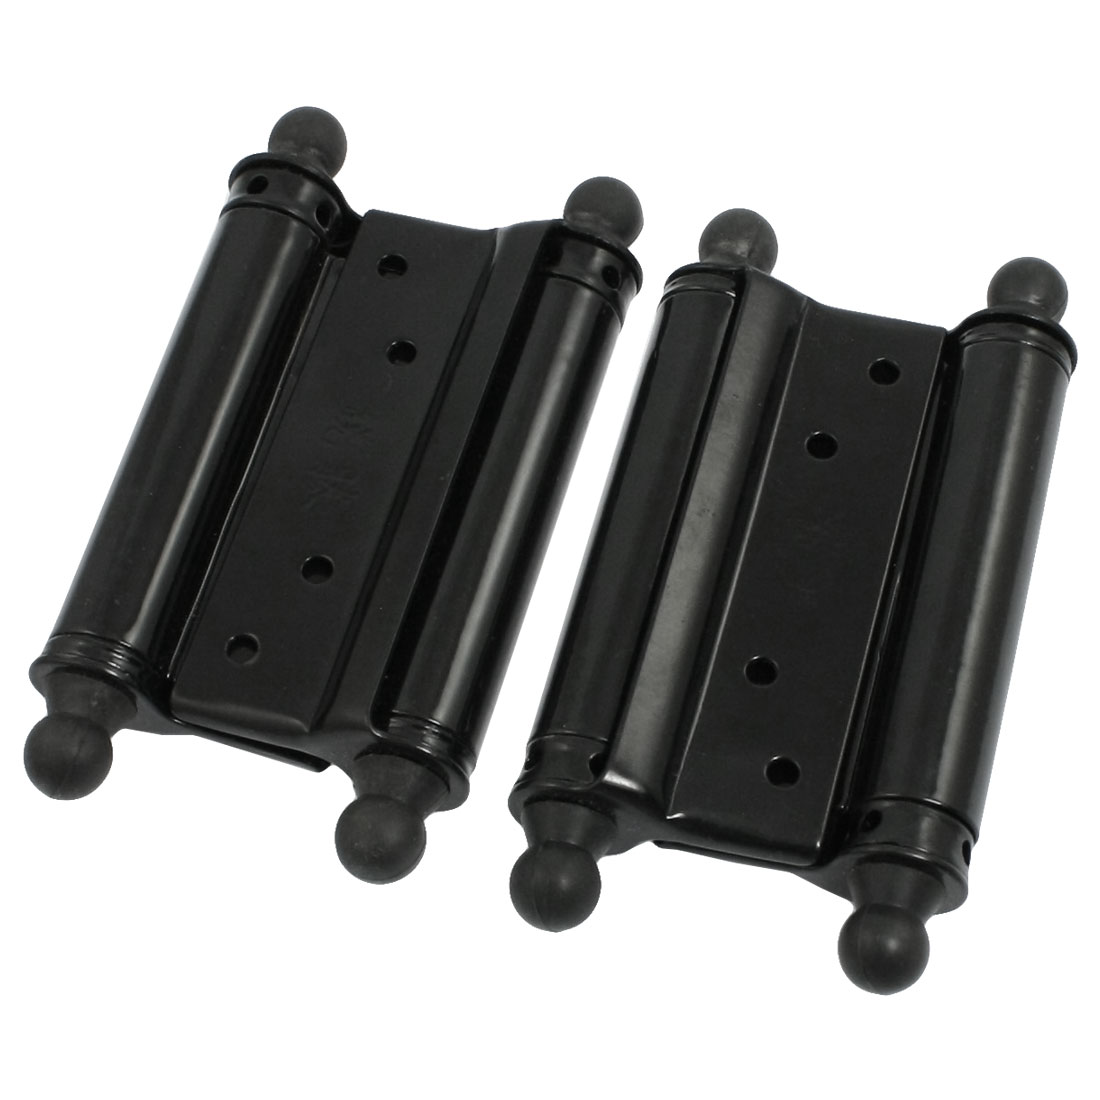 2 Pcs Tight Pin Metal Spring Loaded Door Cabinet Hinges